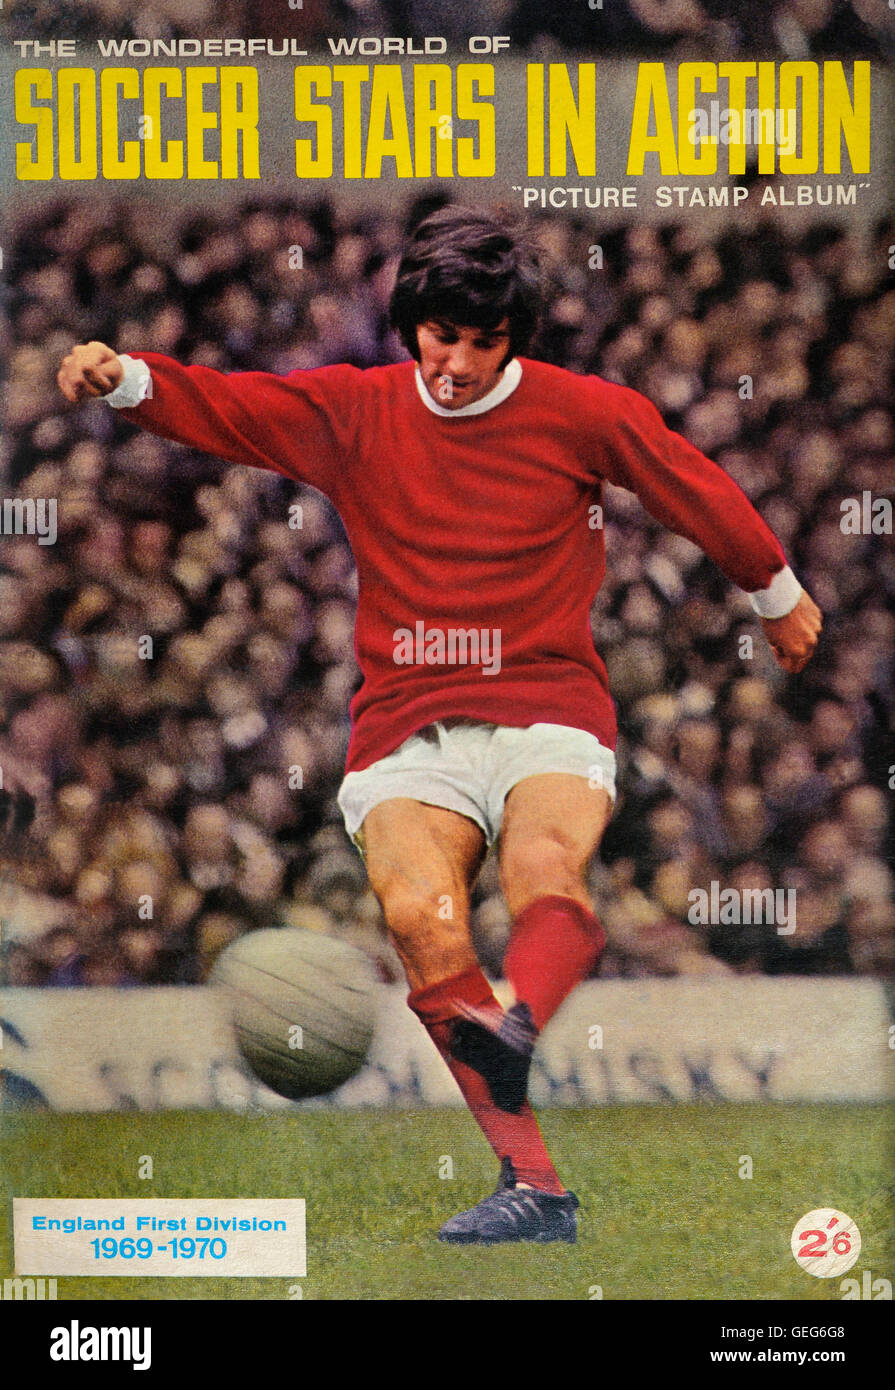 The wonderful world of soccer stars in action picture stamp album front cover of George Best. 1969-1970 - Stock Image